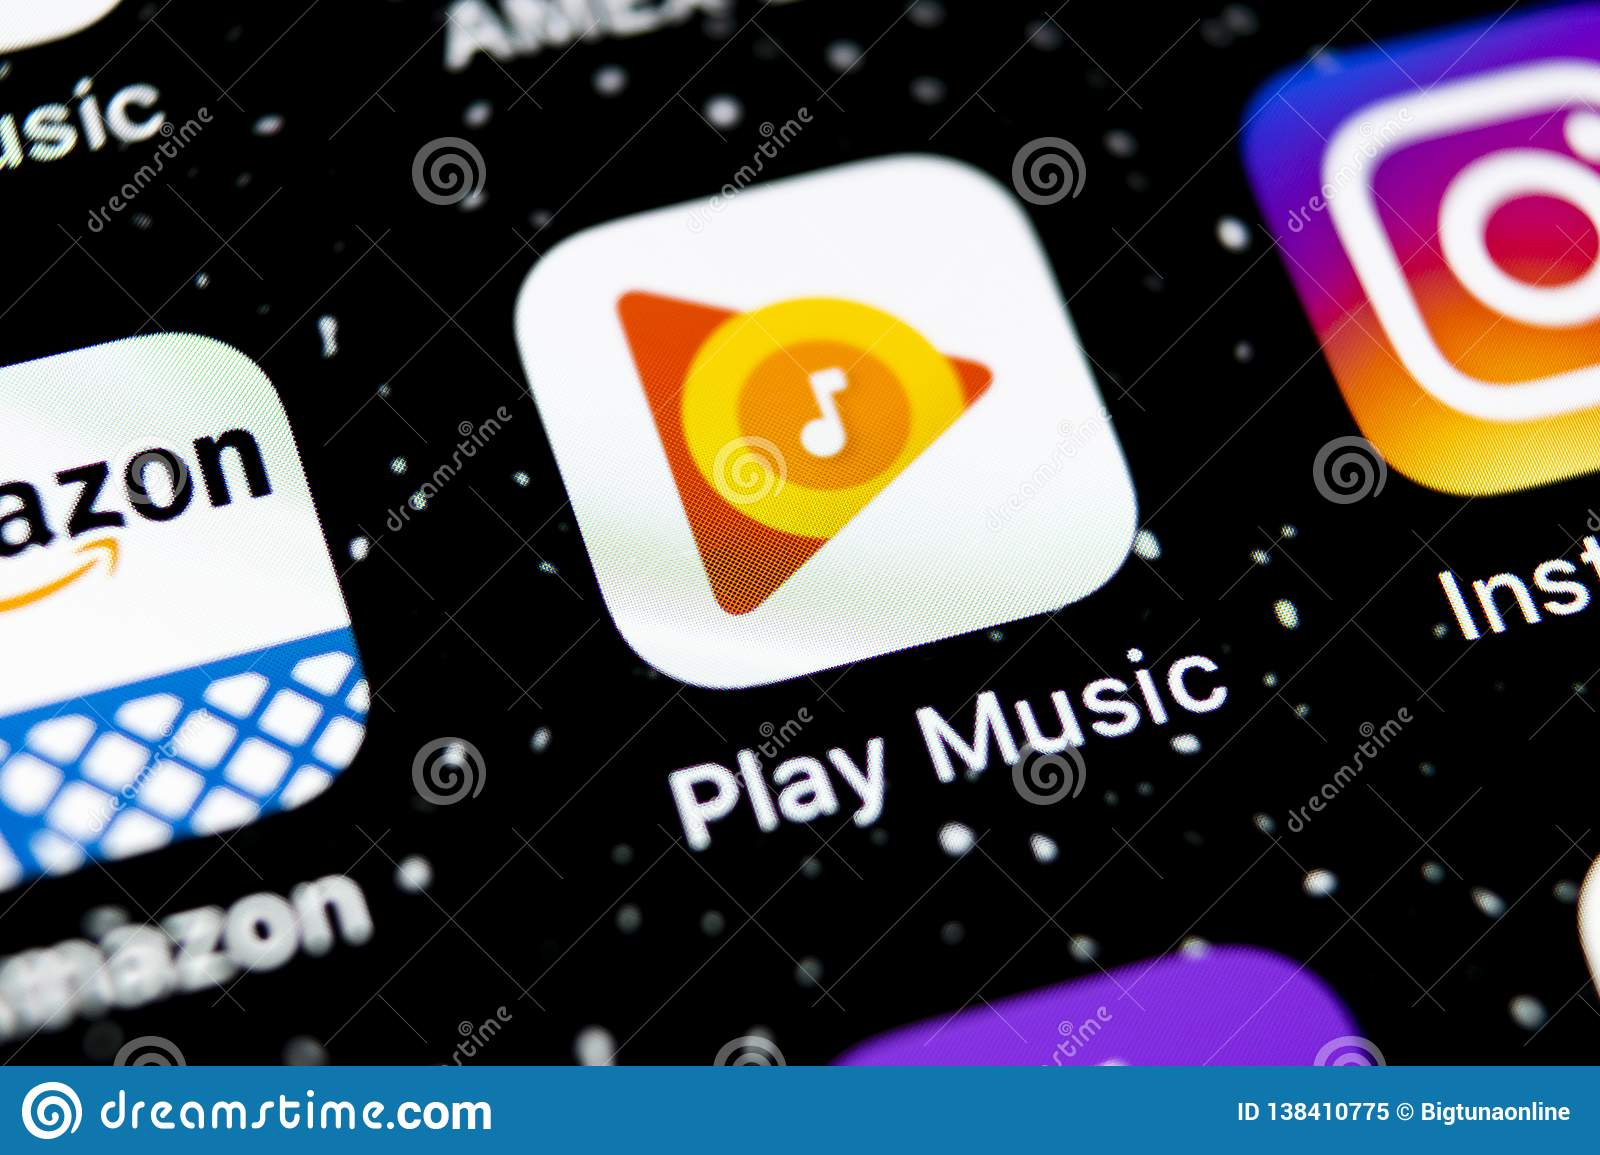 Google Play Music Application Icon On Apple IPhone X Screen